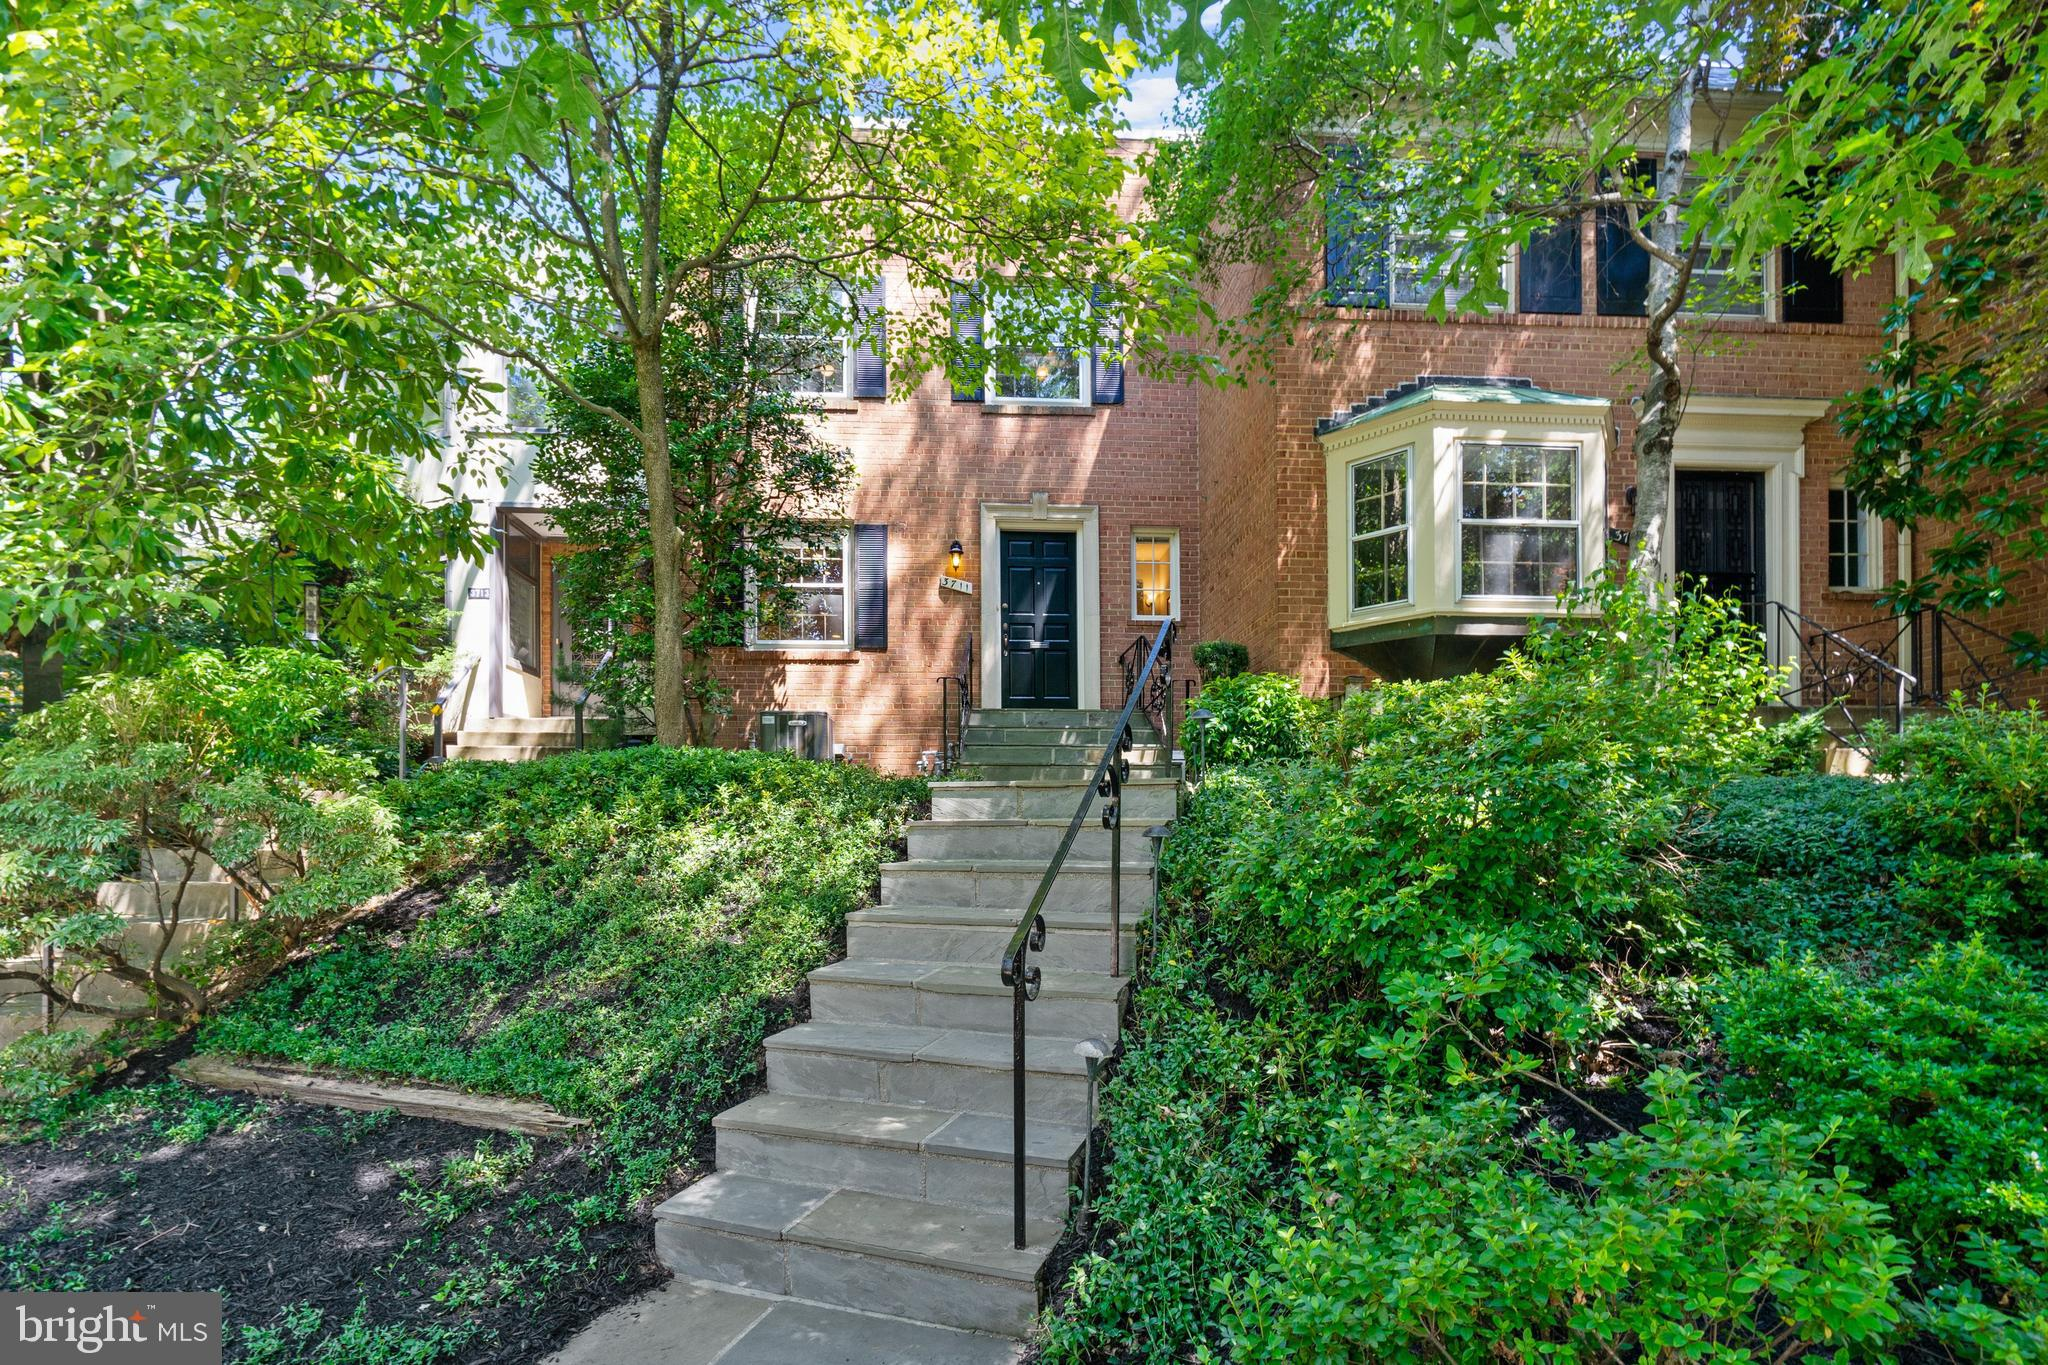 RENOVATED~LIGHT & BRIGHT, SPACIOUS ATTACHED CHEVY CHASE TOWNHOME on Quiet Street, Yet Close to All o